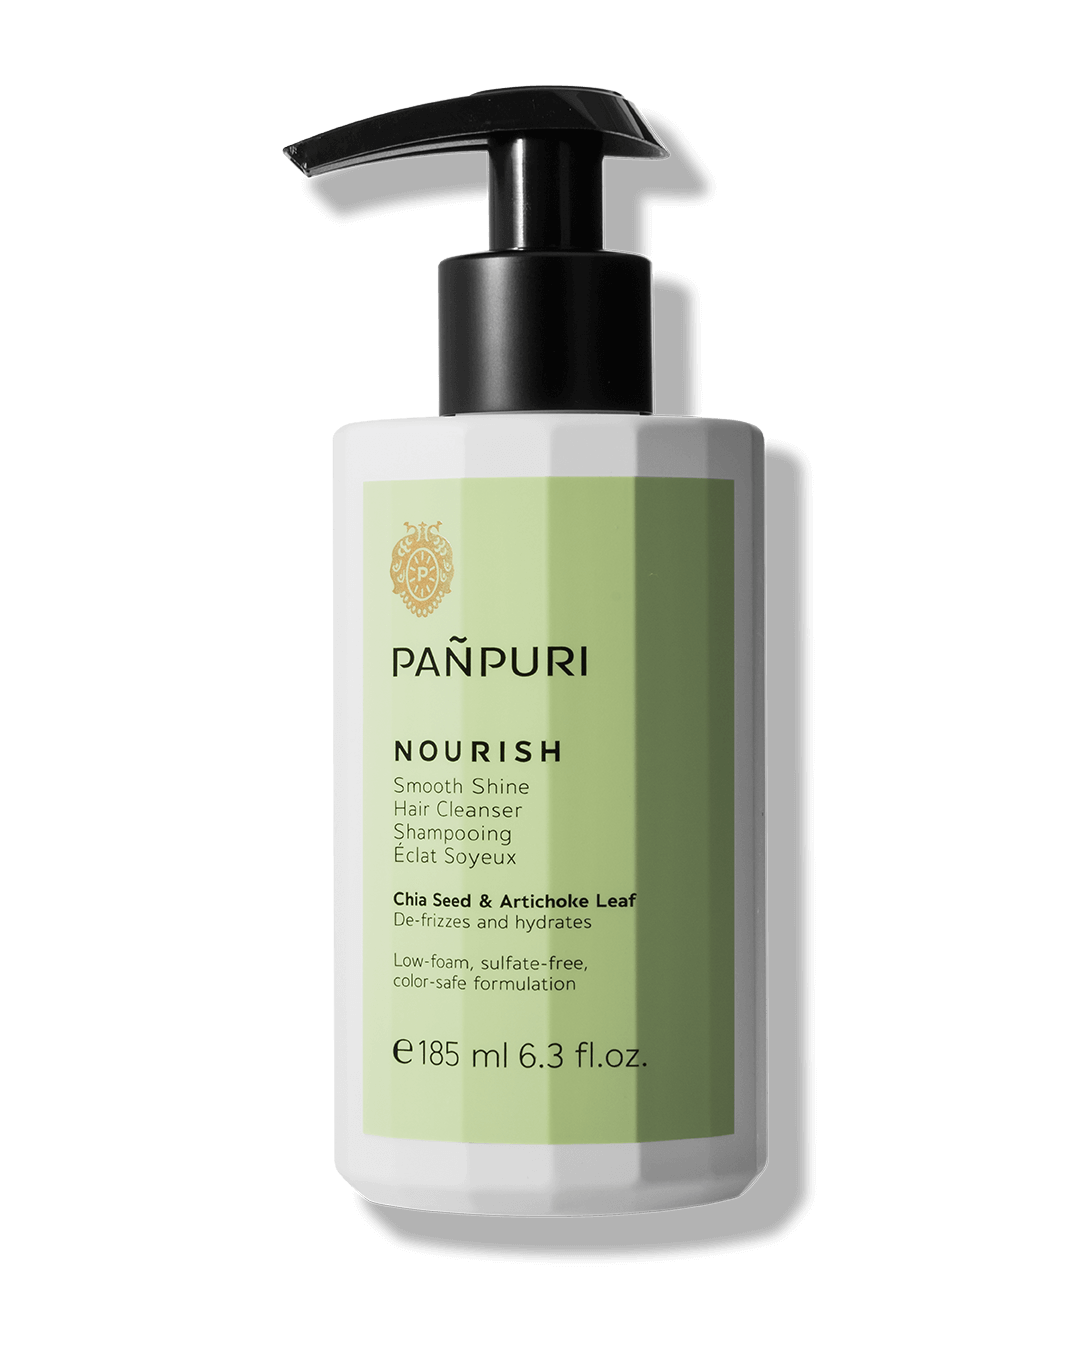 Nourish Smooth Shine Hair Cleanser